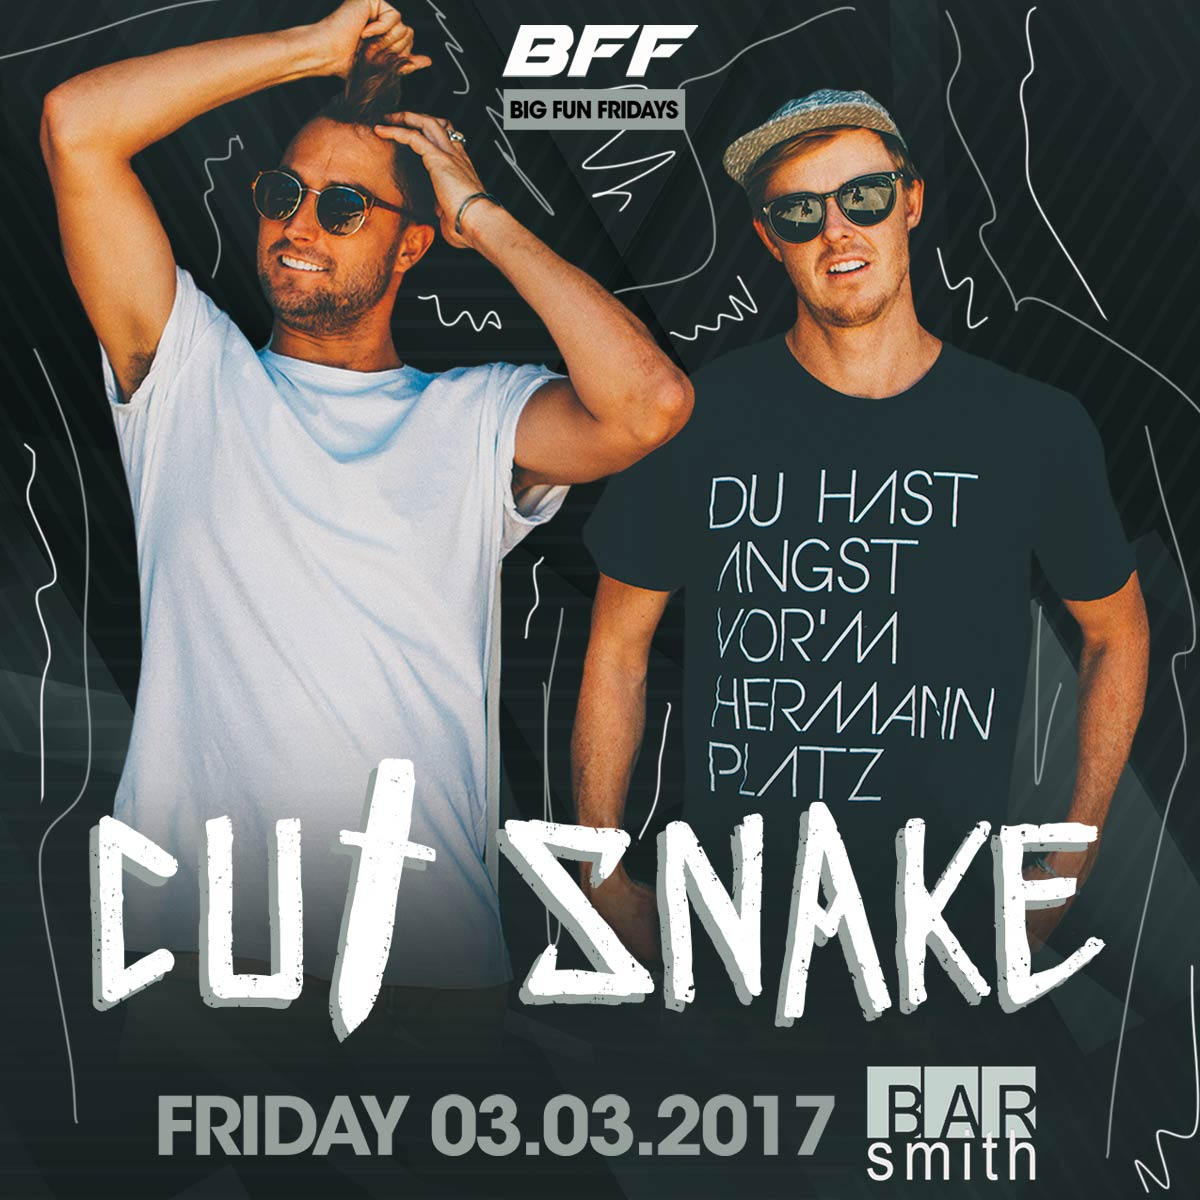 Flyer for Cut Snake - BFF